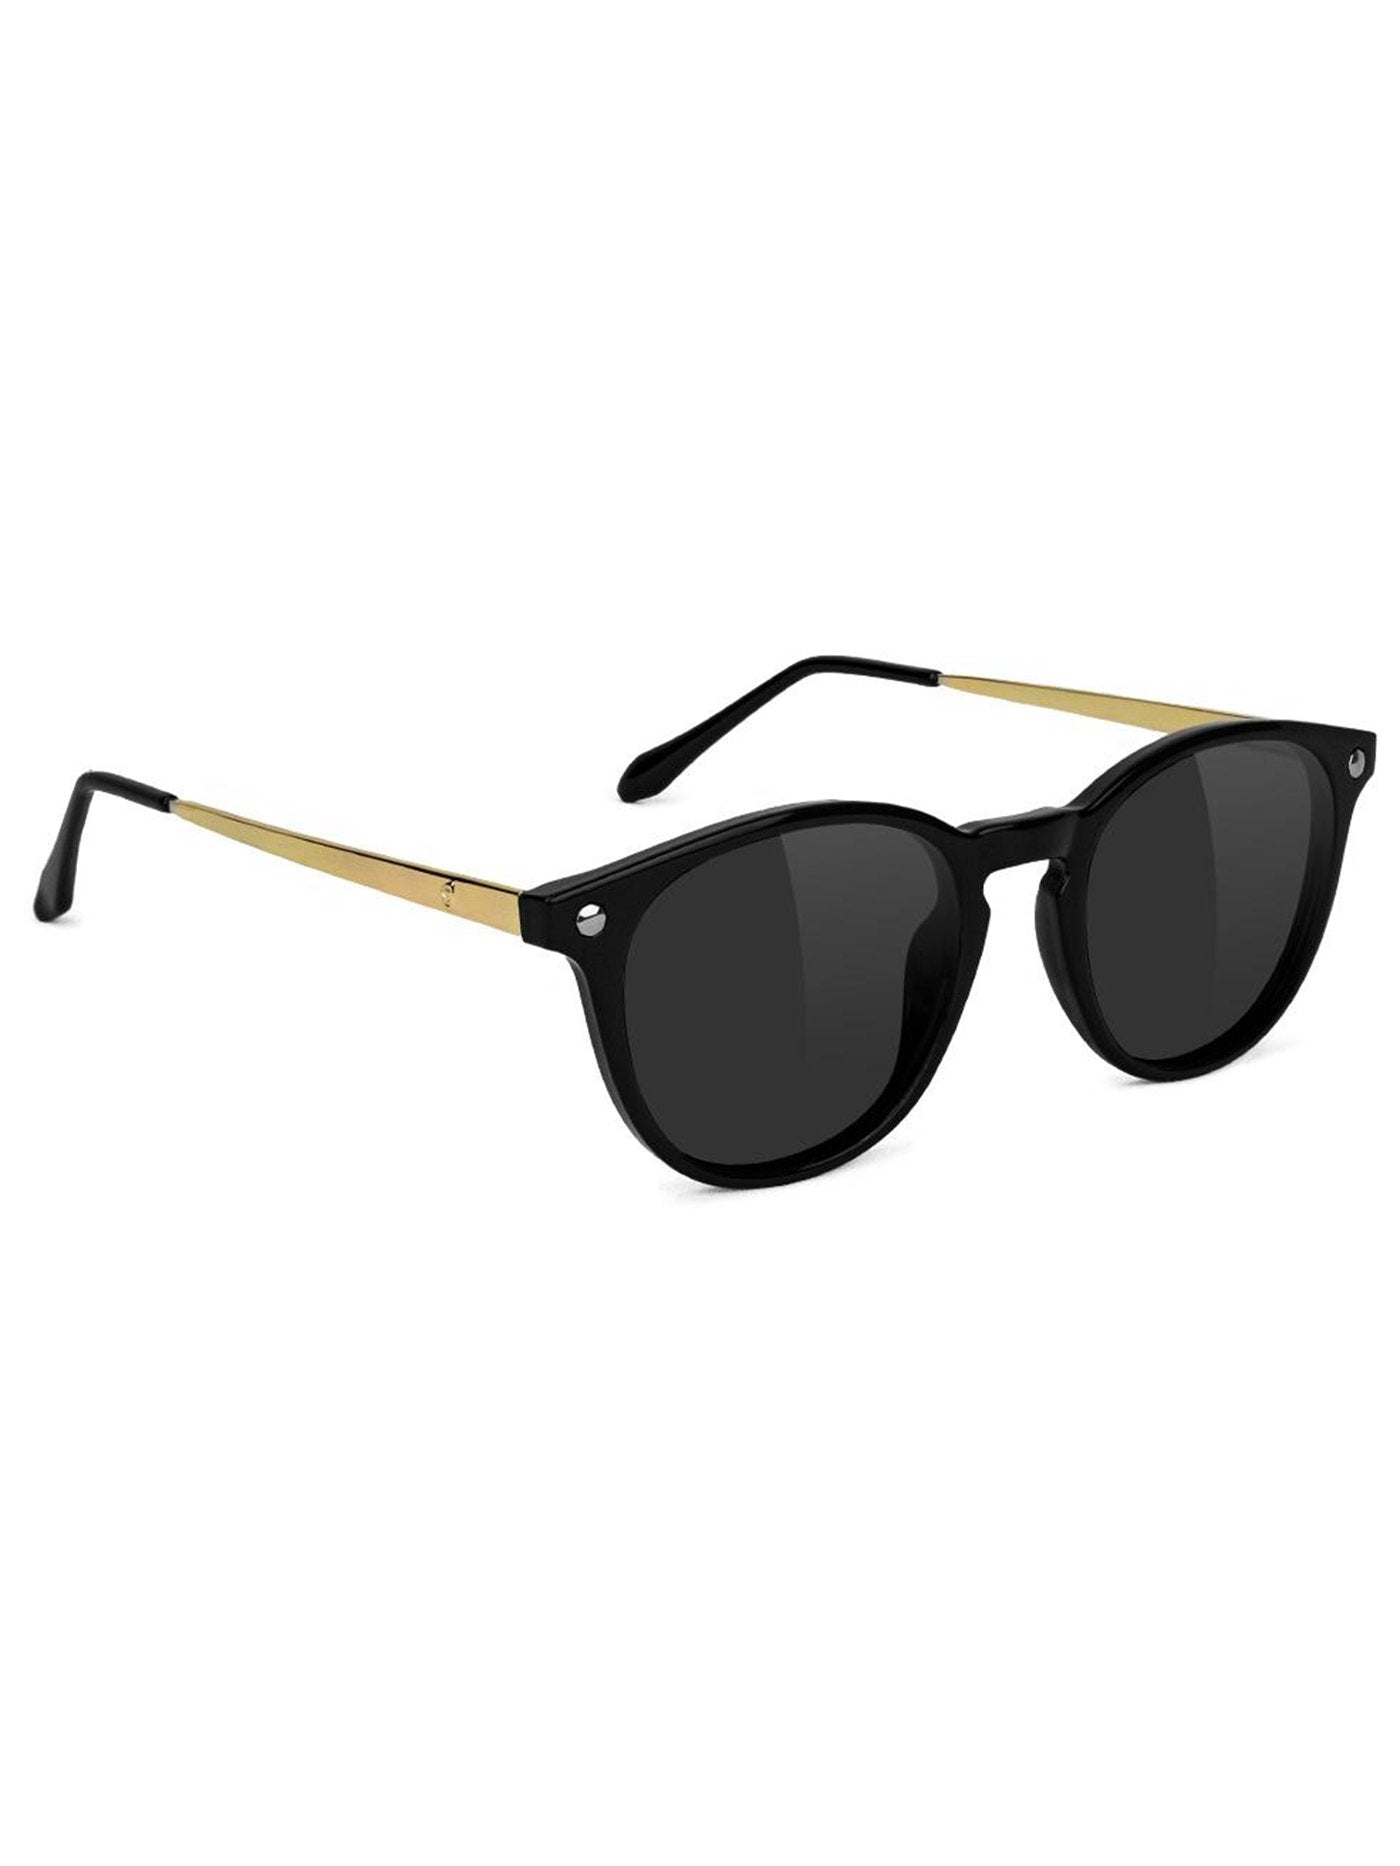 BLACK/GOLD POLARIZED